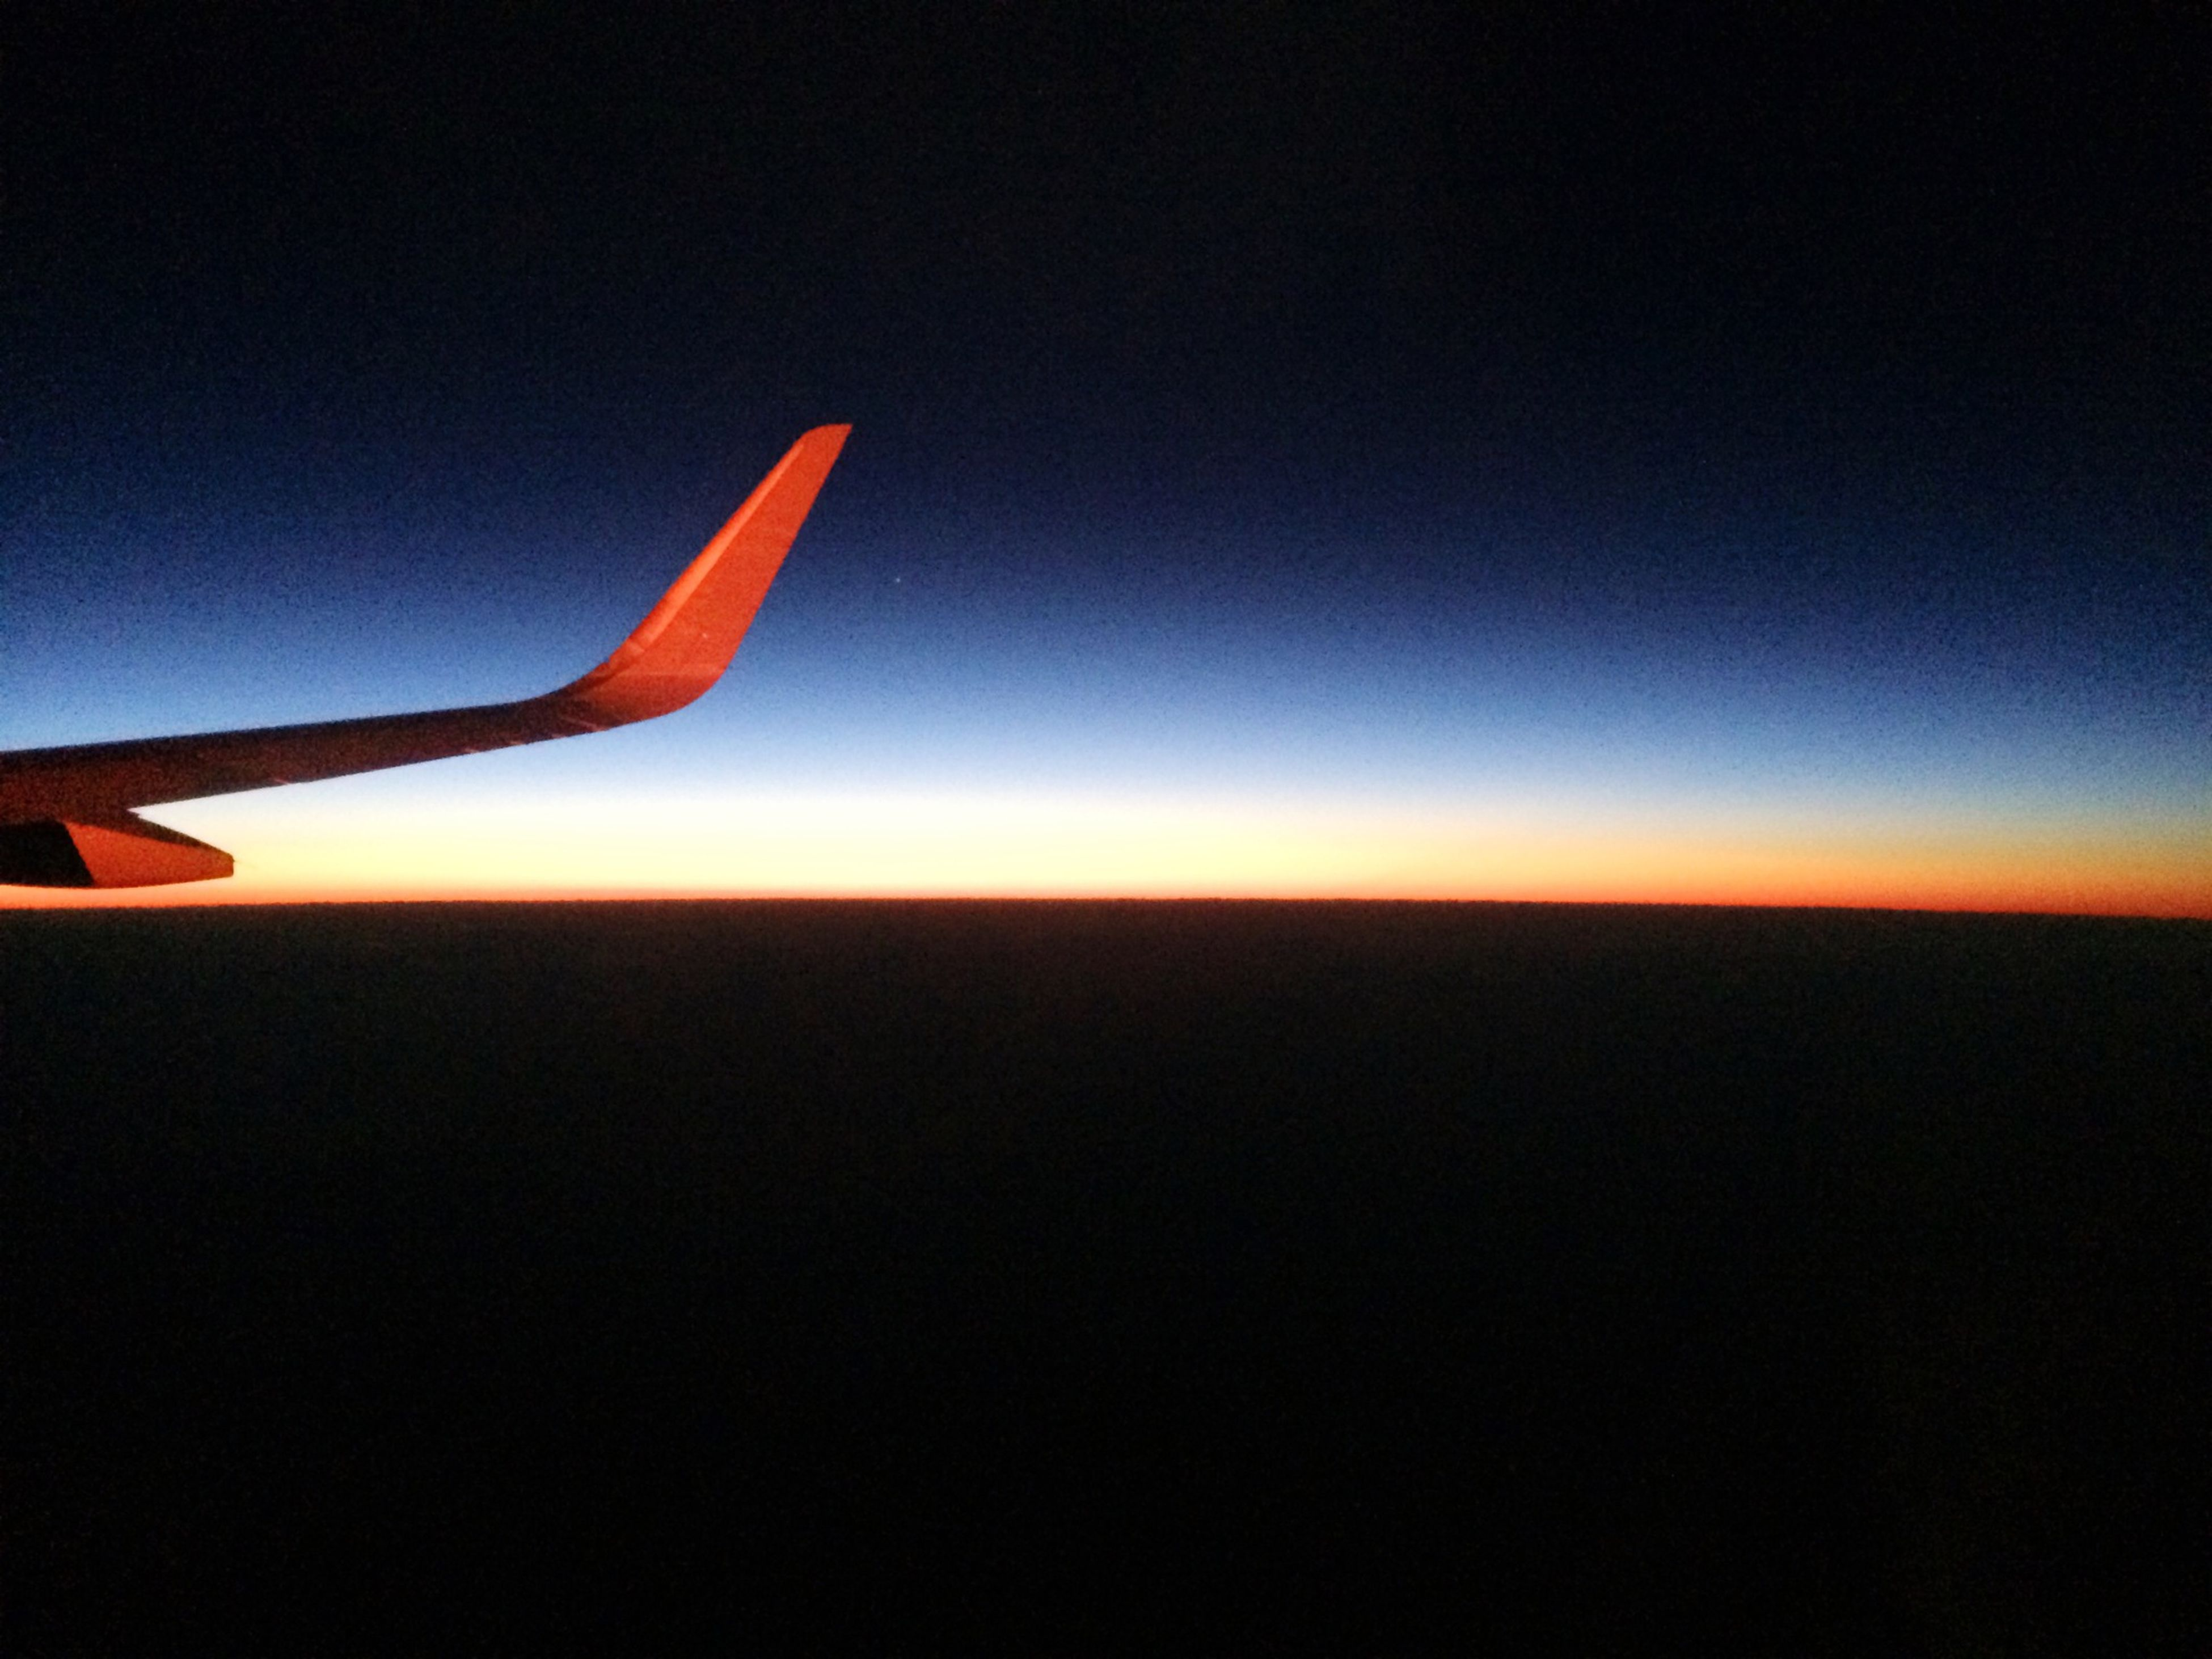 flying, airplane, copy space, sunset, air vehicle, clear sky, part of, transportation, mid-air, aircraft wing, sky, scenics, cropped, silhouette, beauty in nature, nature, orange color, blue, travel, dusk